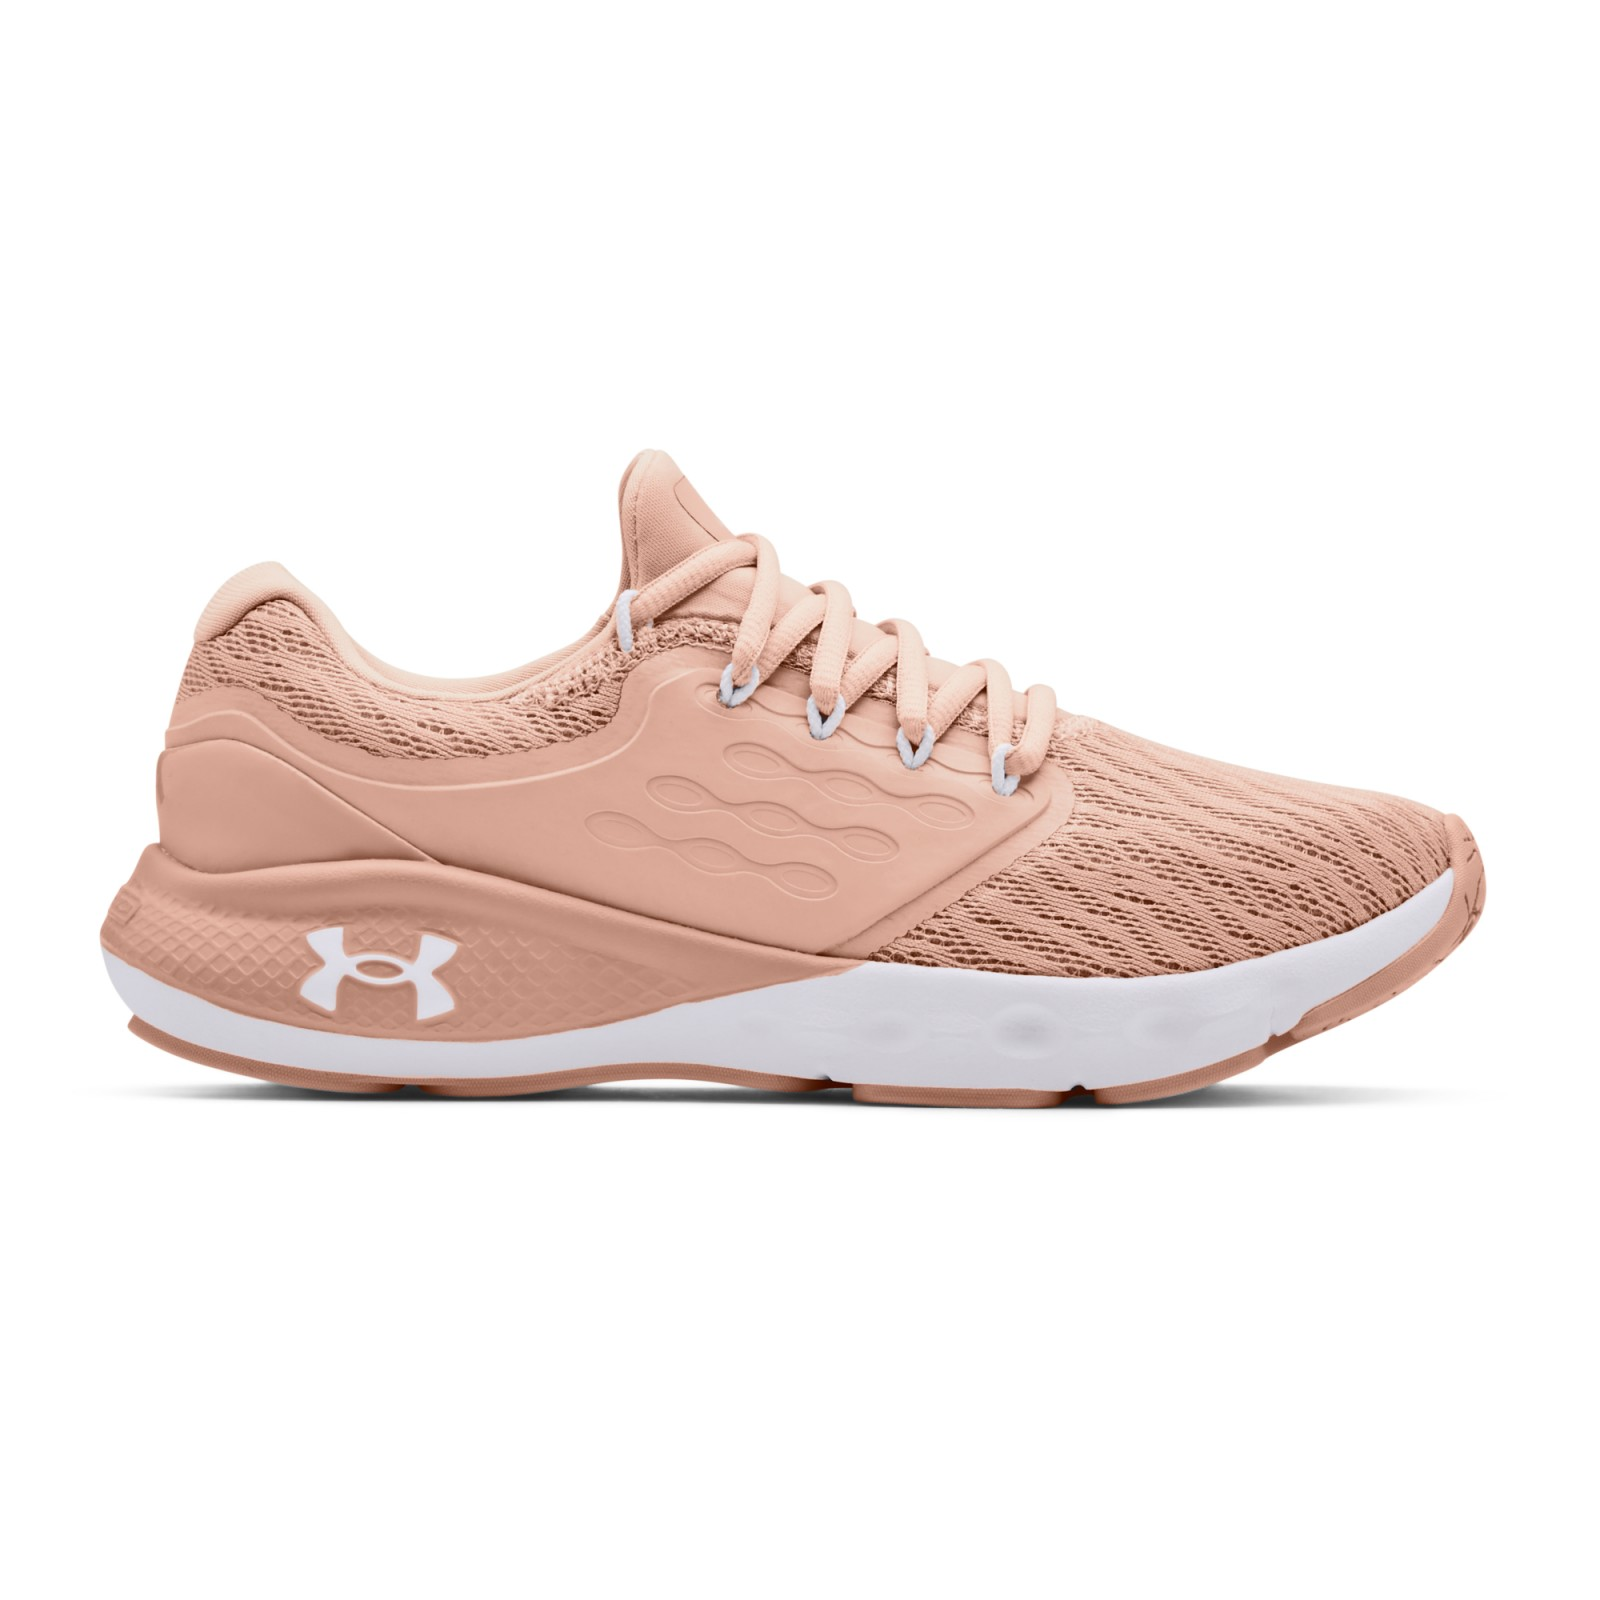 UA W Charged Vantage-PNK Particle Pink / Particle Pink / White